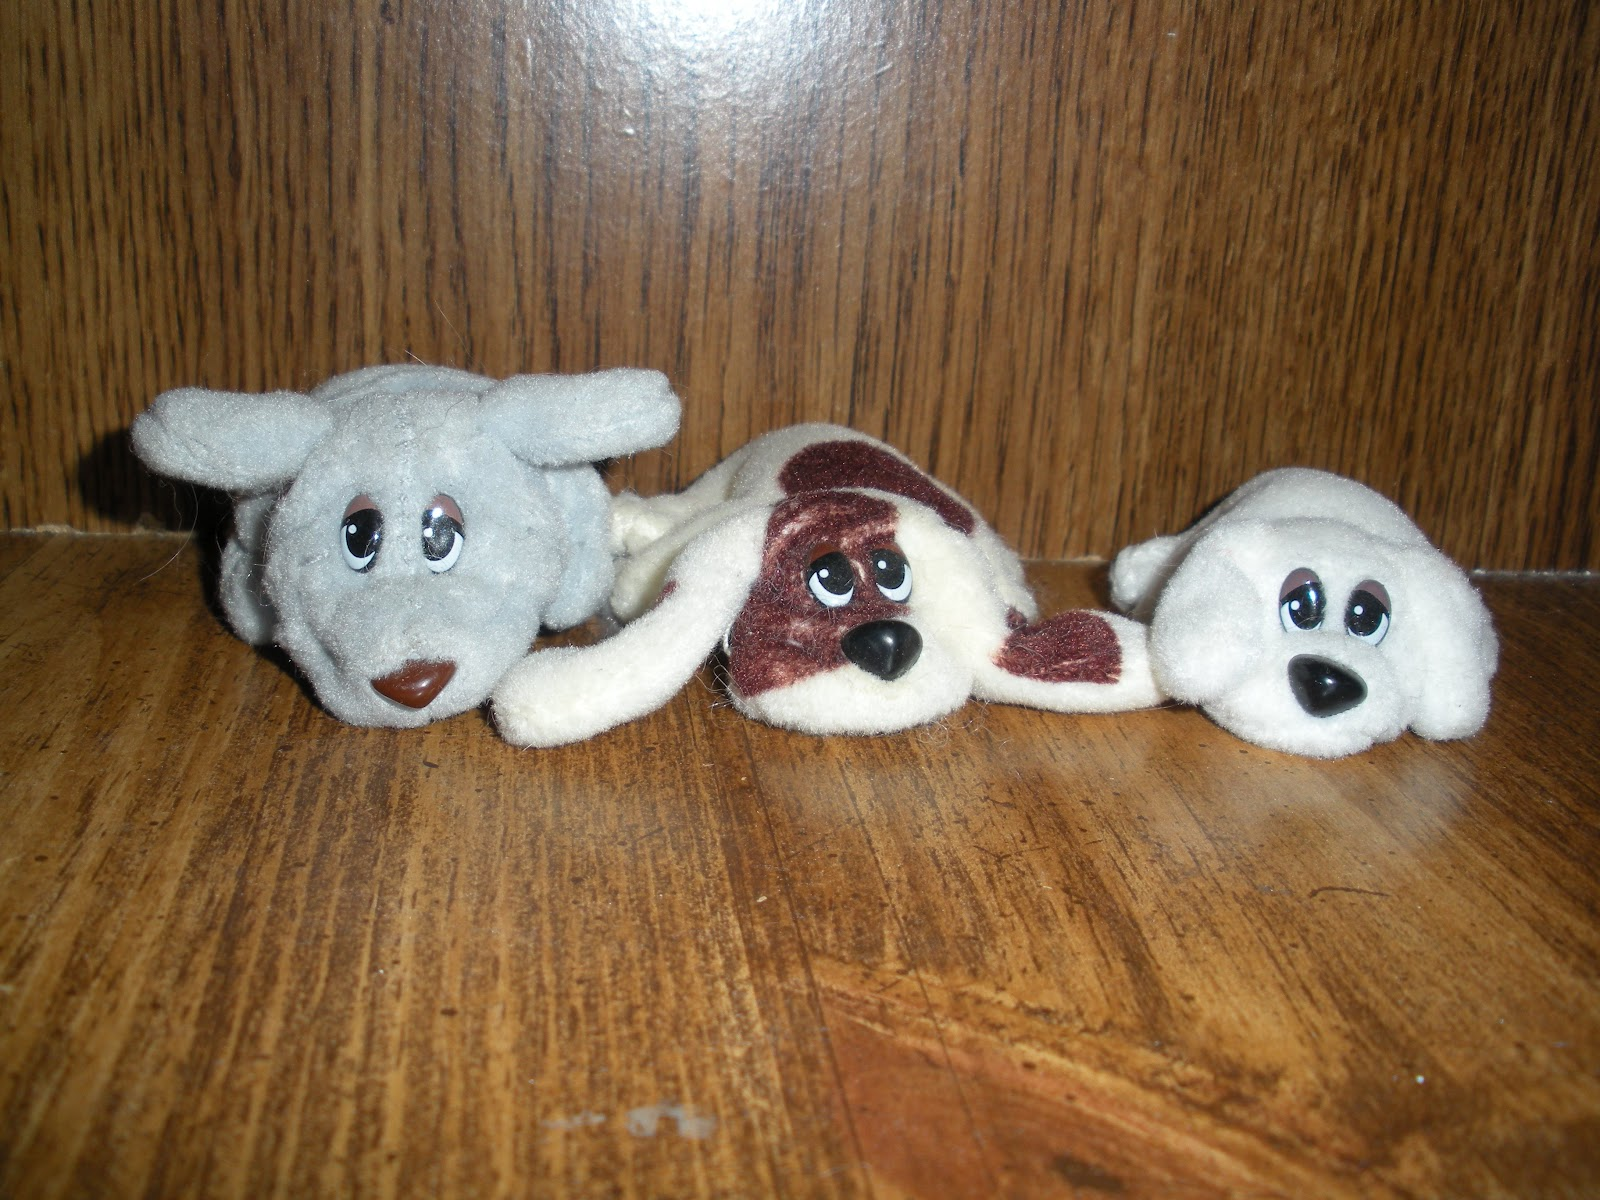 My Life and Dreams Pound Puppies